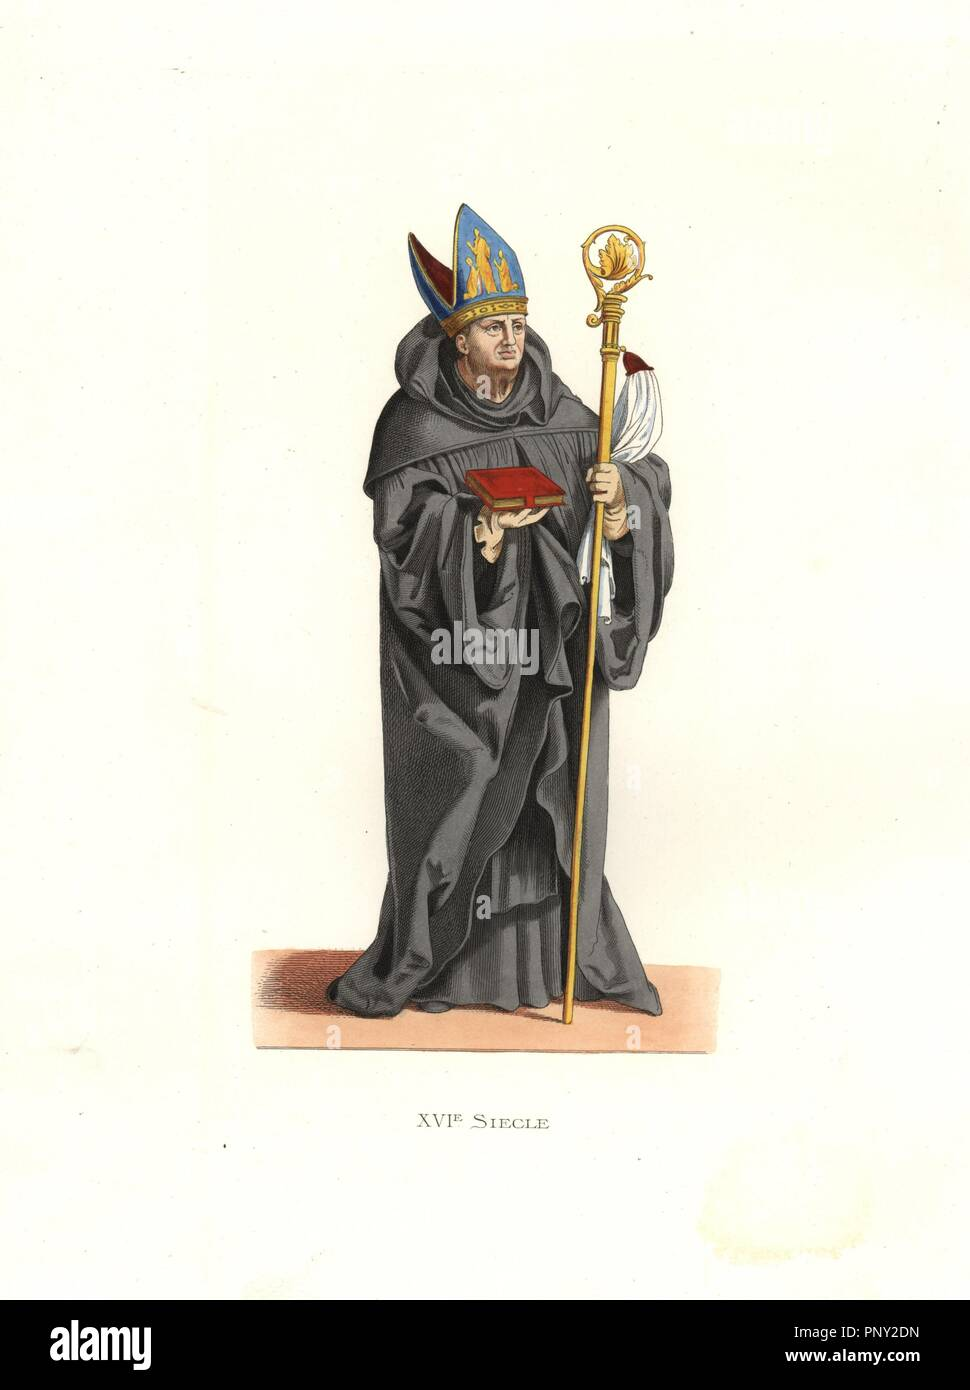 """Benedictine abbot, 16th century, in black robes, carrying a bible and crook, wearing an embroidered mitre.. Handcolored illustration by E. Lechevallier-Chevignard, lithographed by A. Didier, L. Flameng, F. Laguillermie, from Georges Duplessis's """"Costumes historiques des XVIe, XVIIe et XVIIIe siecles"""" (Historical costumes of the 16th, 17th and 18th centuries), Paris 1867. The book was a continuation of the series on the costumes of the 12th to 15th centuries published by Camille Bonnard and Paul Mercuri from 1830. Georges Duplessis (1834-1899) was curator of the Prints department at the Bibliot Stock Photo"""